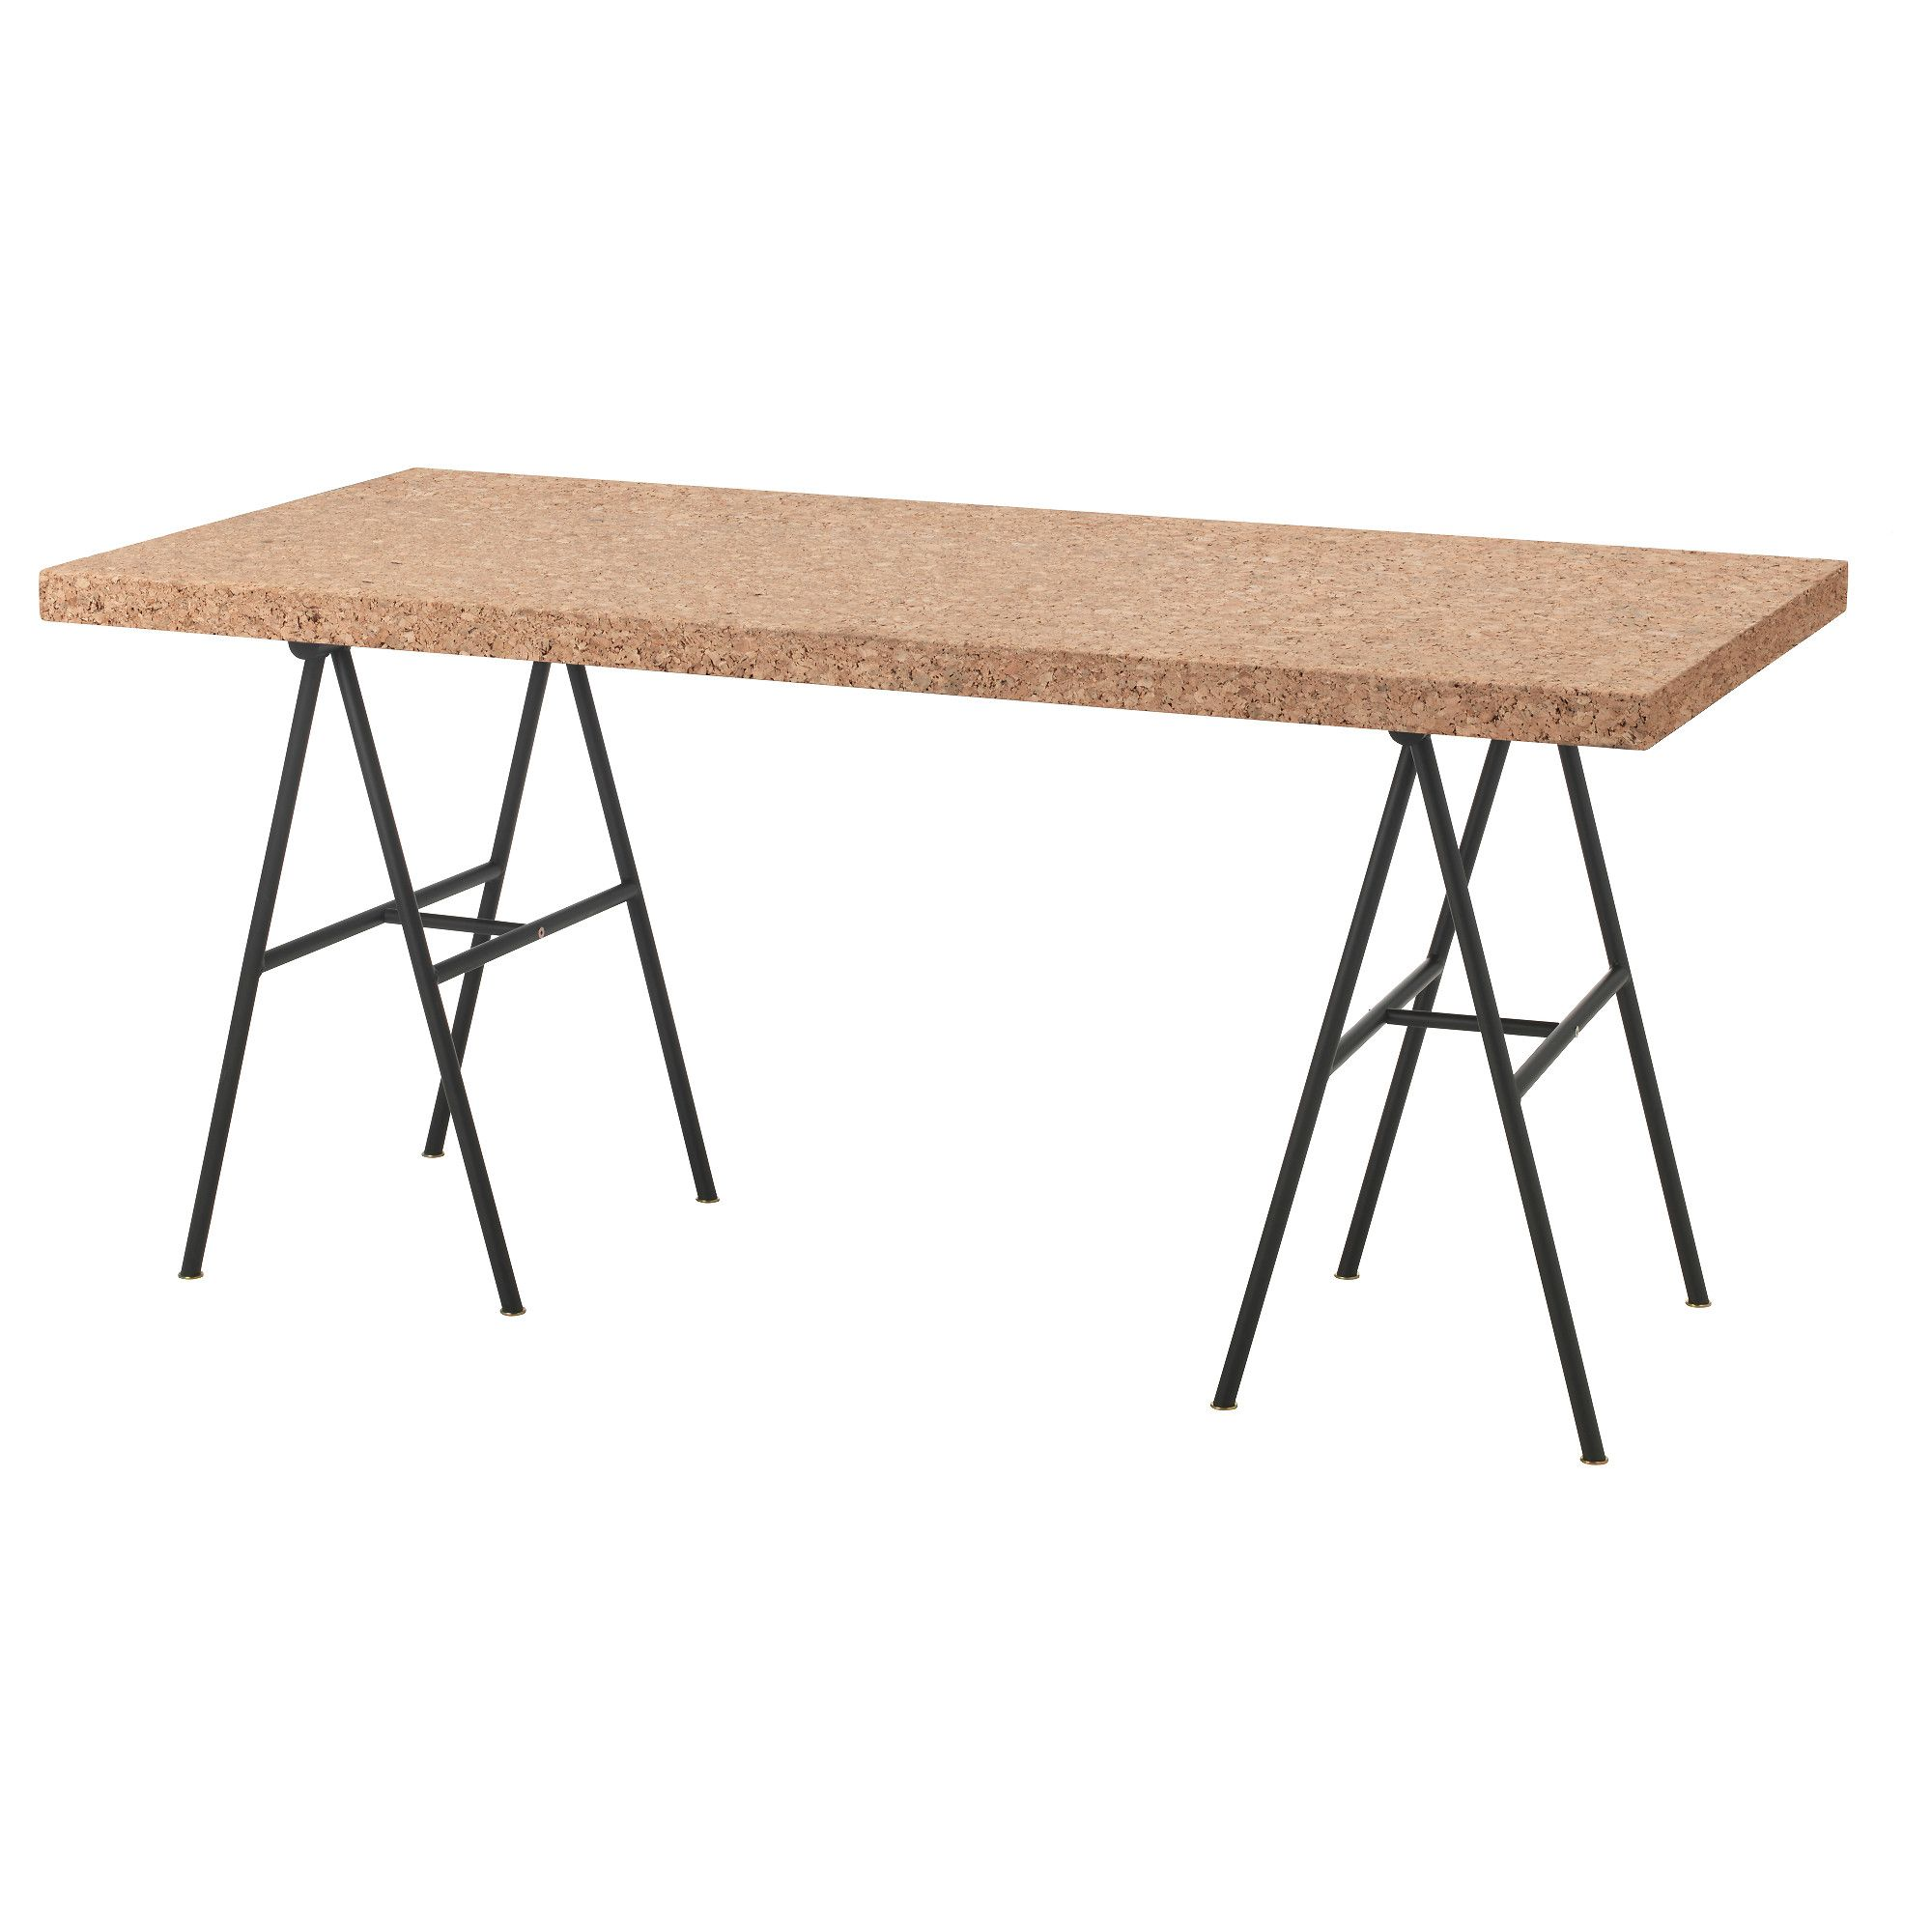 Ikea Table Bases